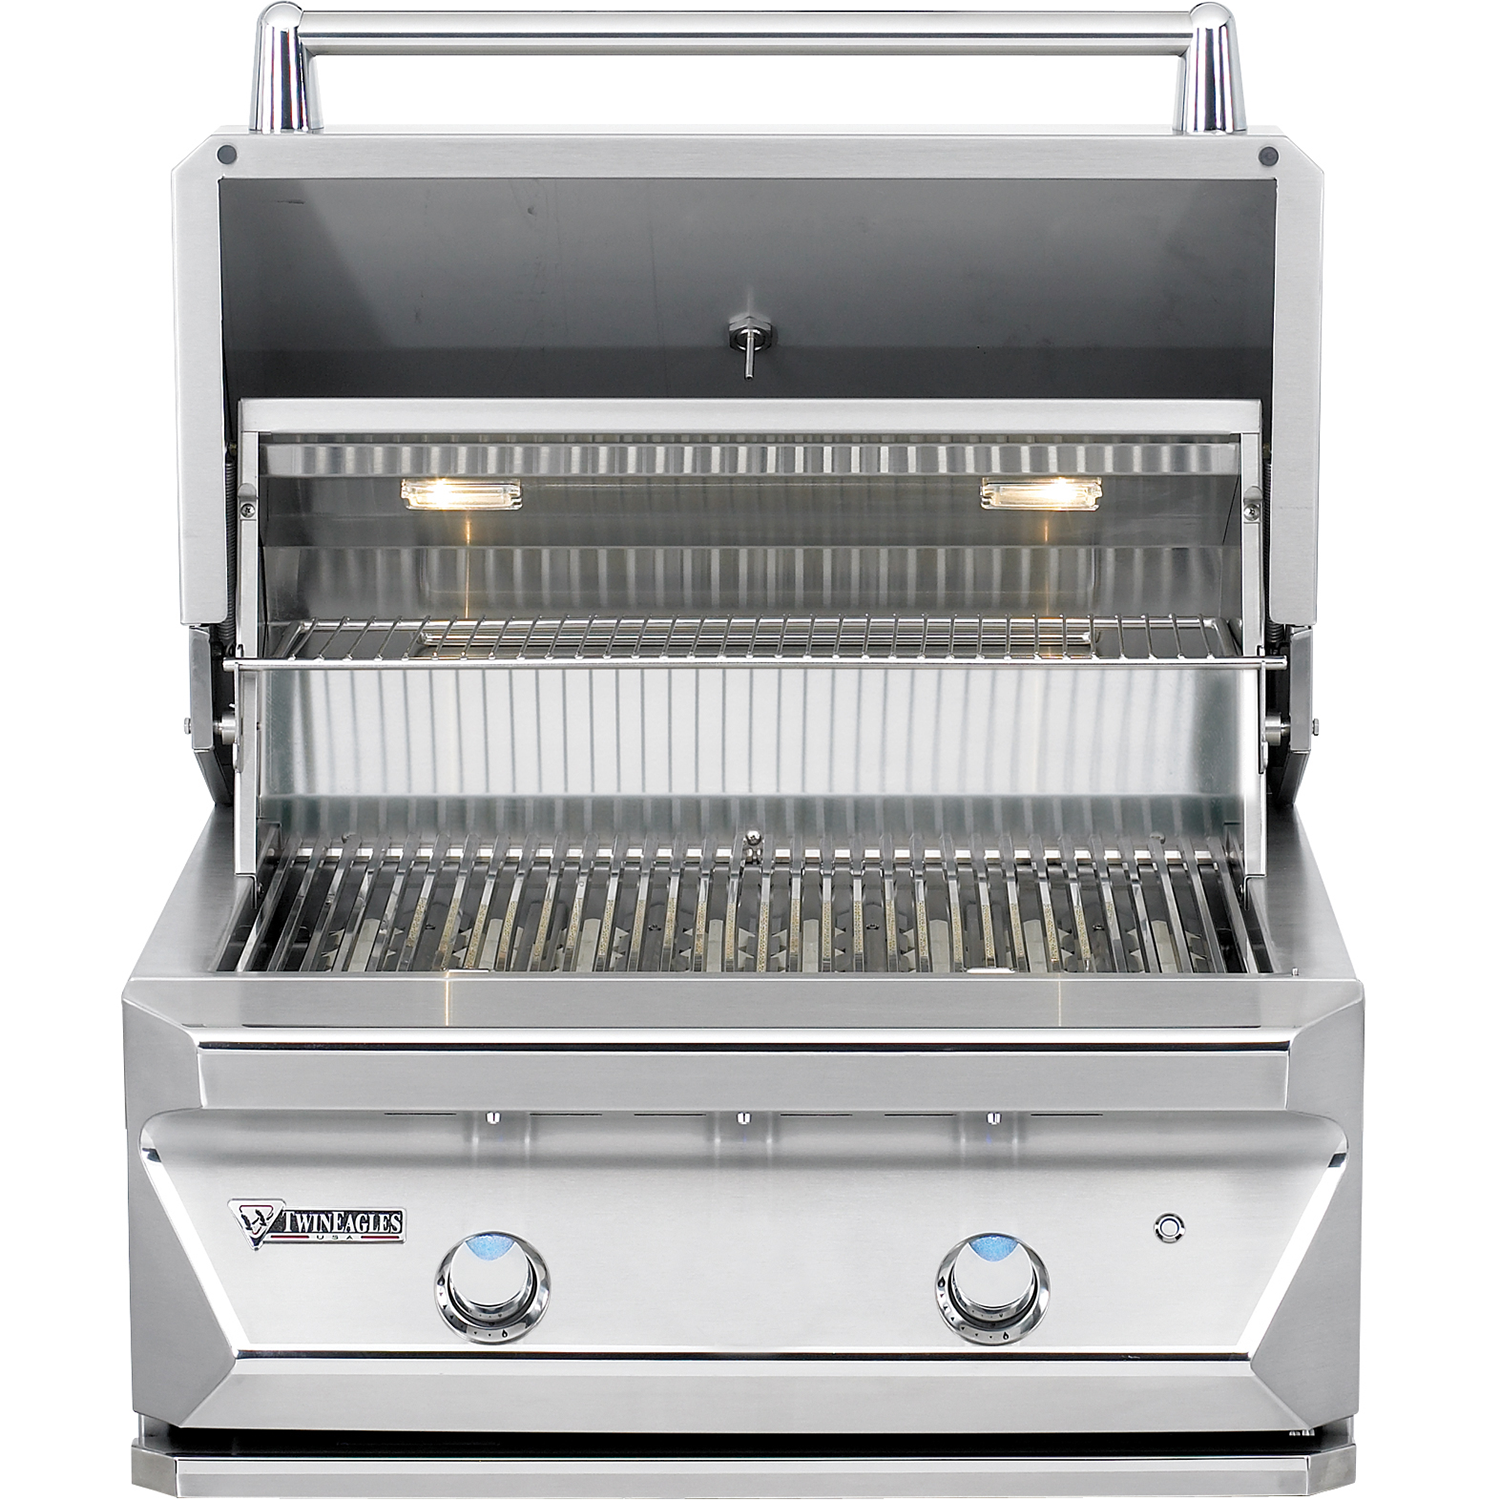 "30"" Twin Eagles Built-In Gas Grill w/ Infrared Rotisserie, Liquid Propane"